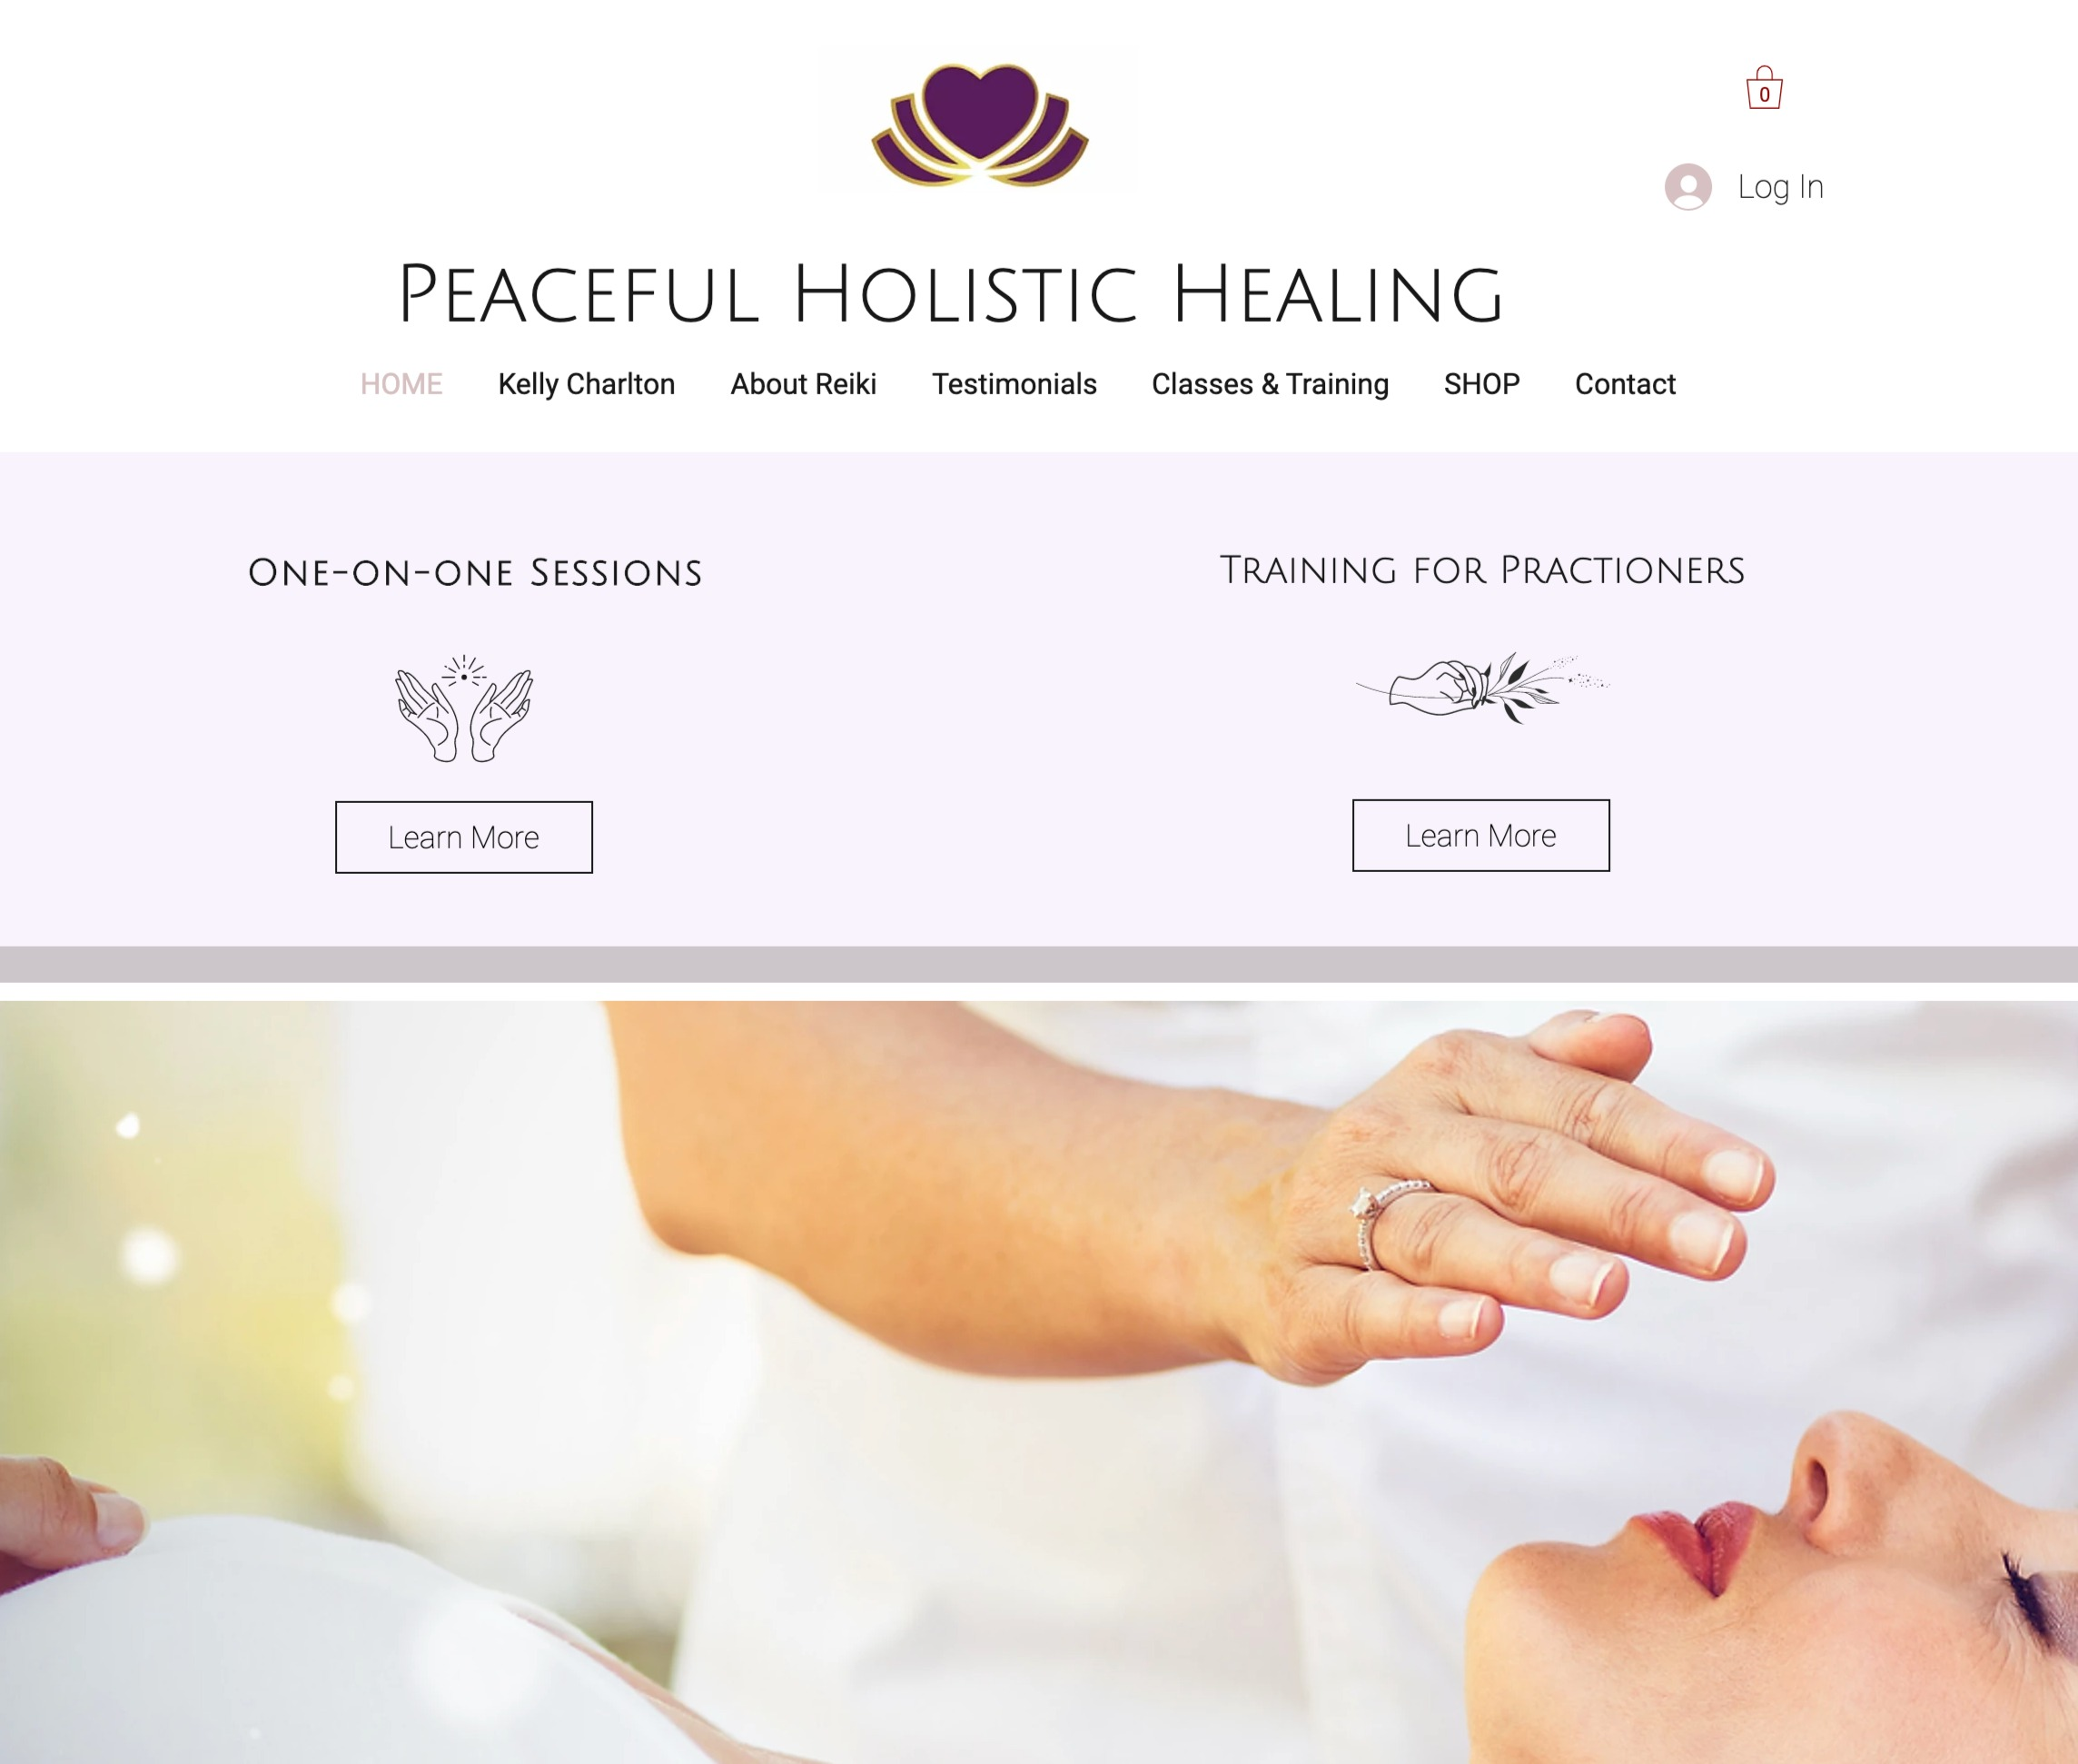 Peaceful Holistic Healing